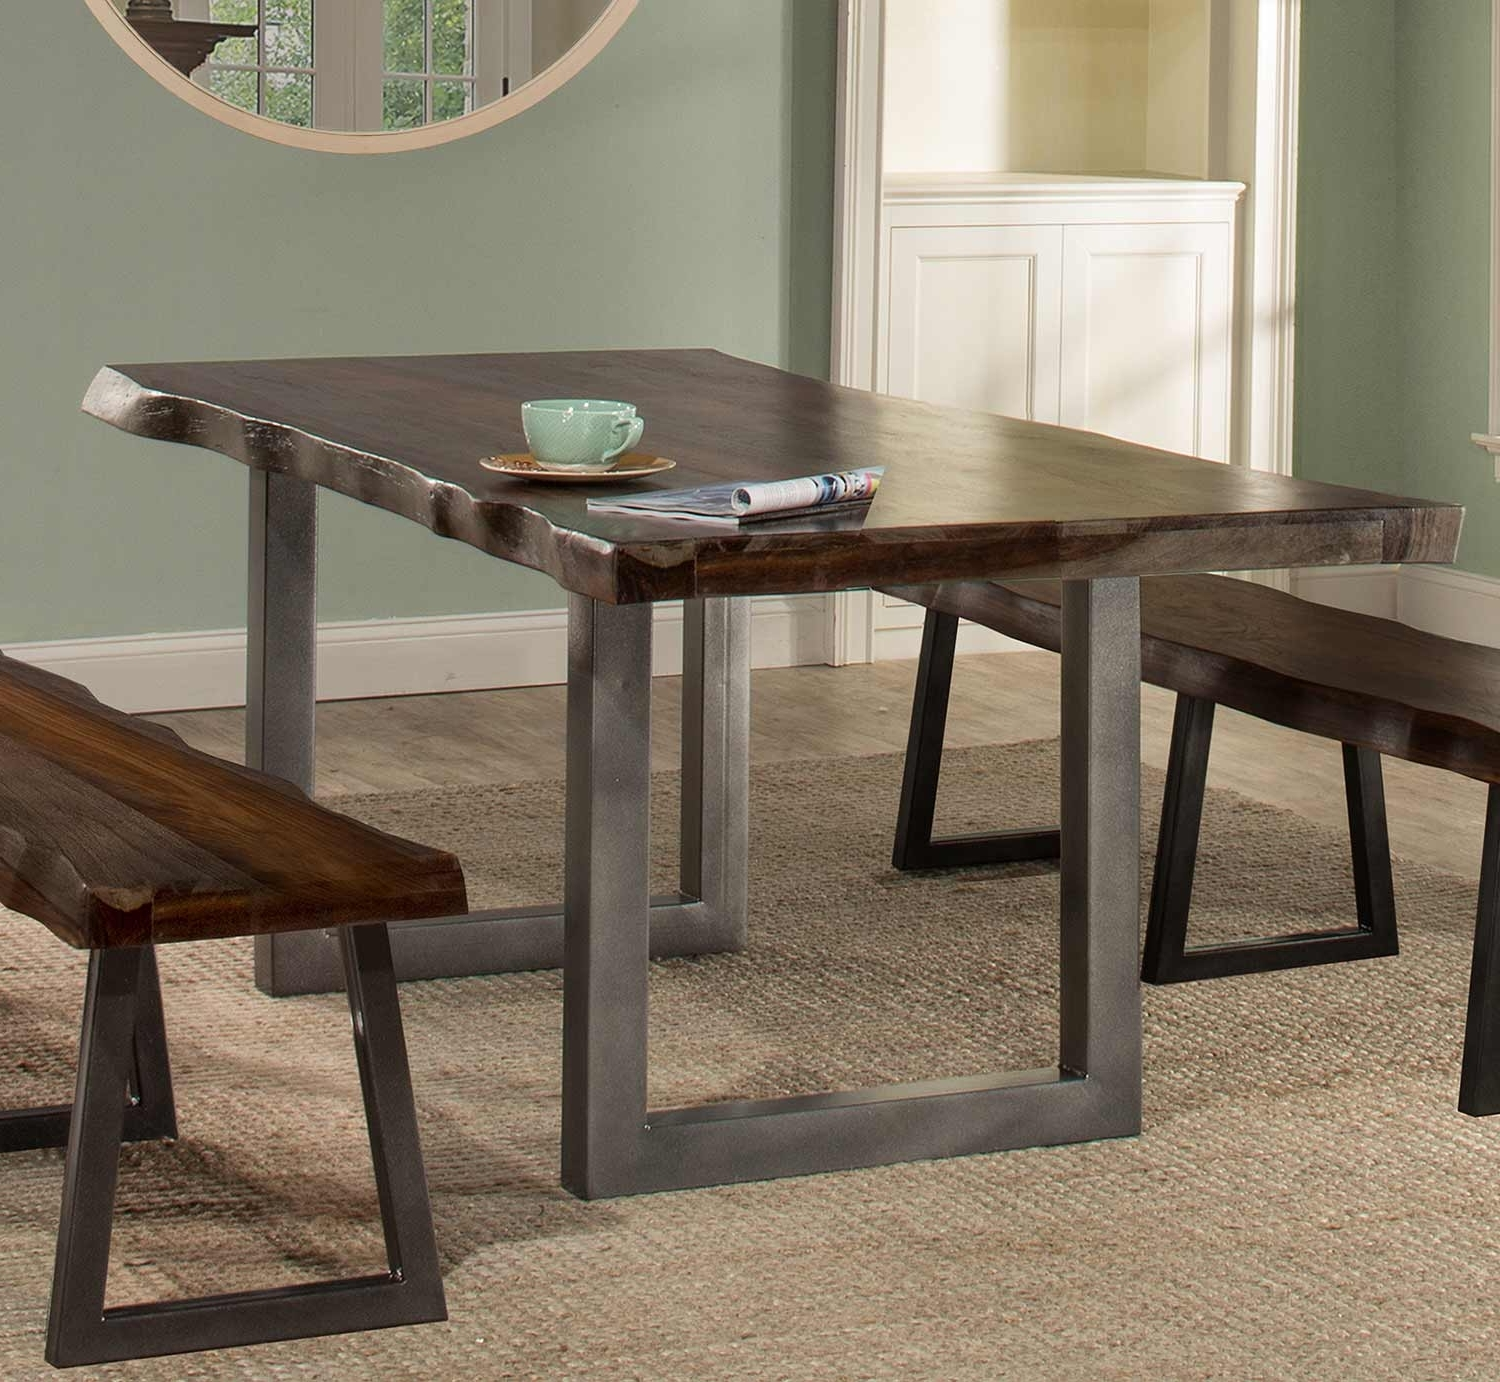 Hillsdale Emerson Rectangle Dining Table – Gray Sheesham 5925Dt In Latest Sheesham Dining Tables (View 13 of 25)